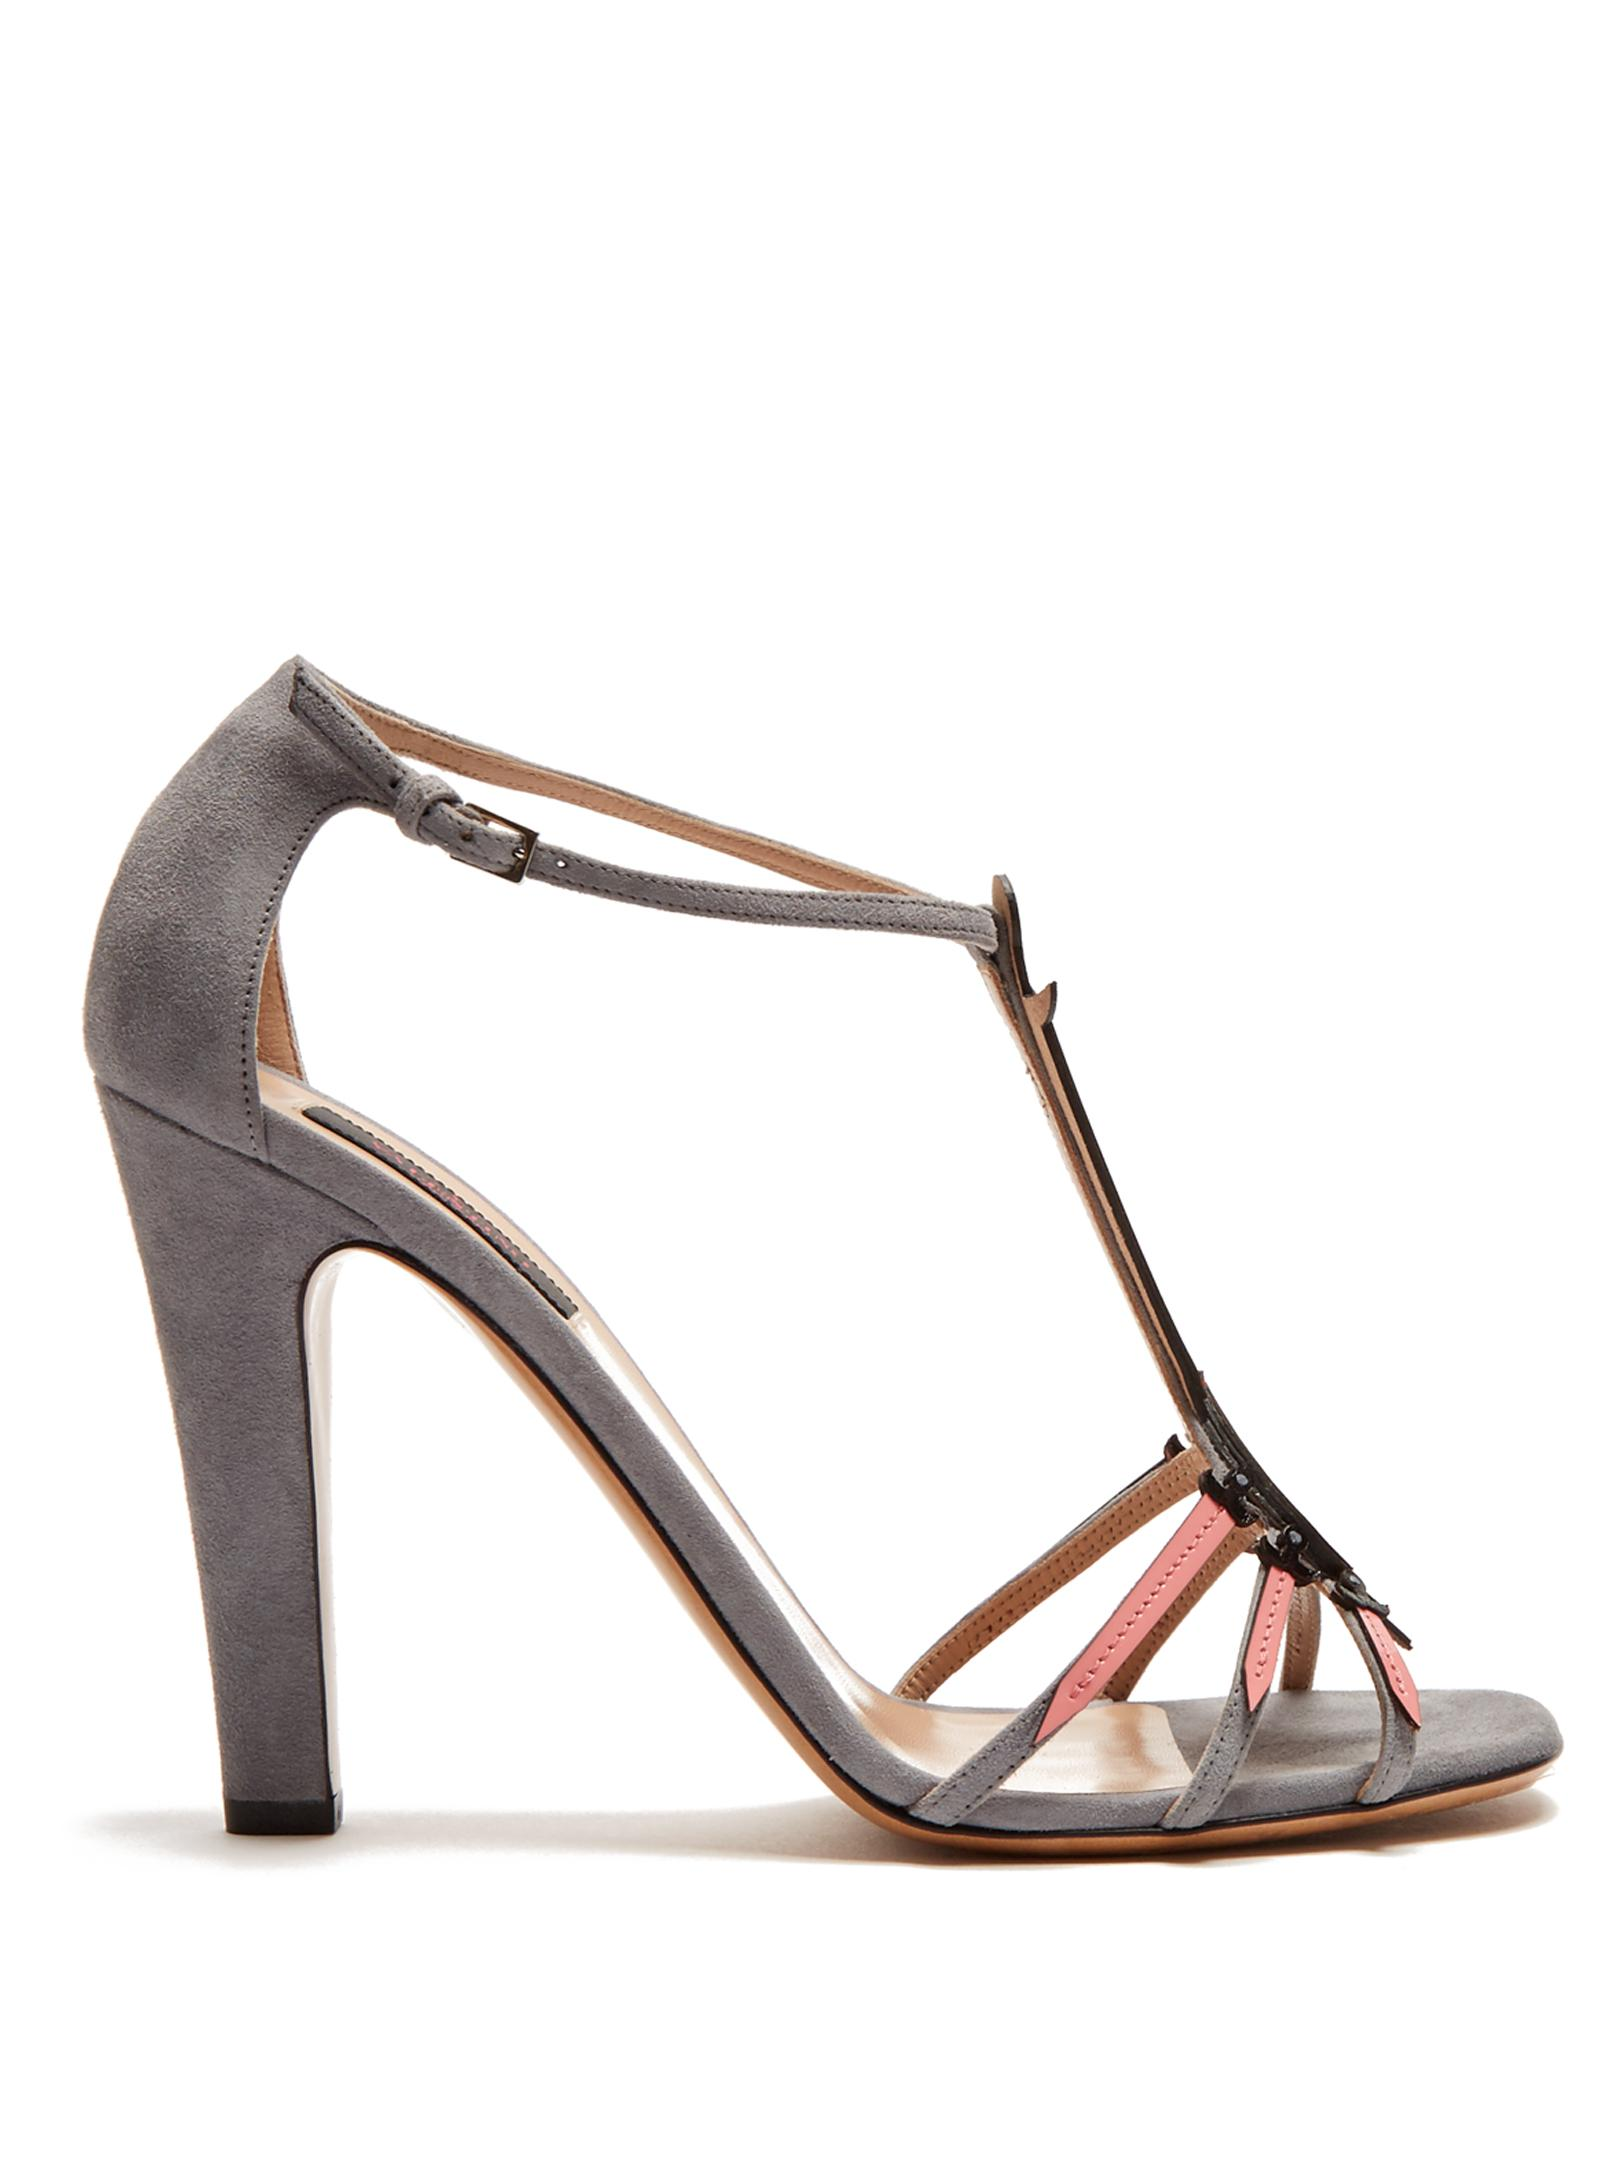 View Valentino Love Blade suede and patent-leather sandals Discount Sneakernews Clearance Ebay Supply For Sale gJimyf